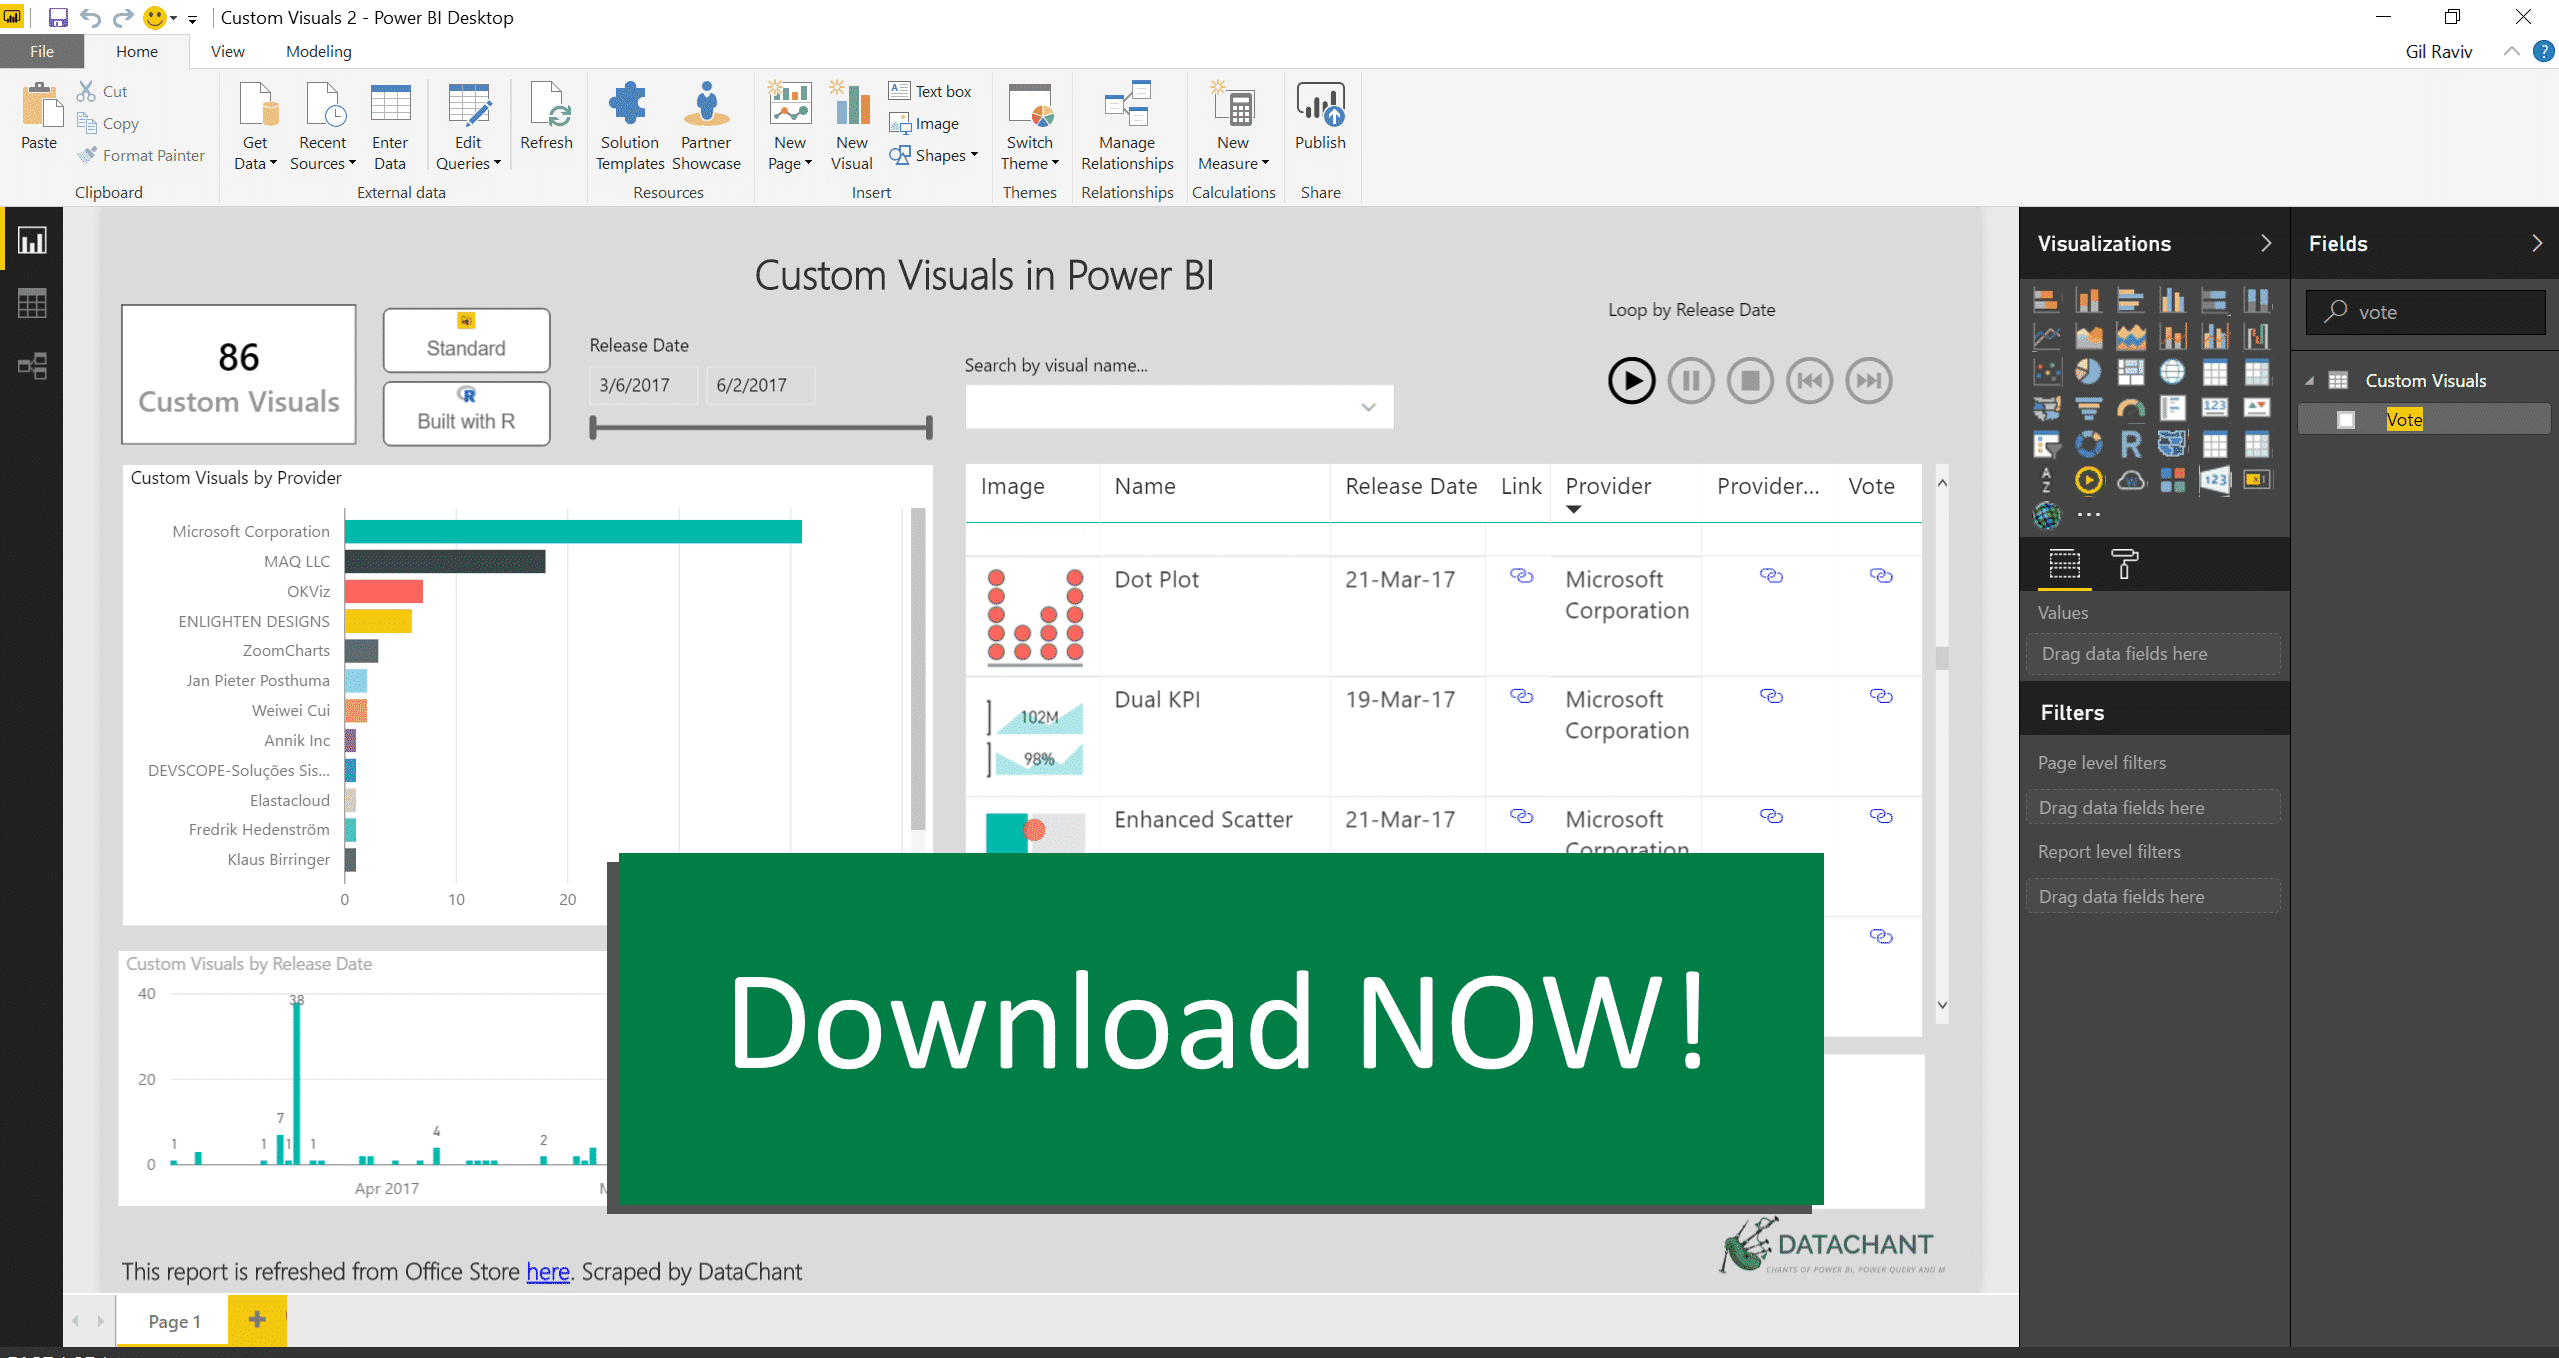 Explore the Custom Visuals in Power BI